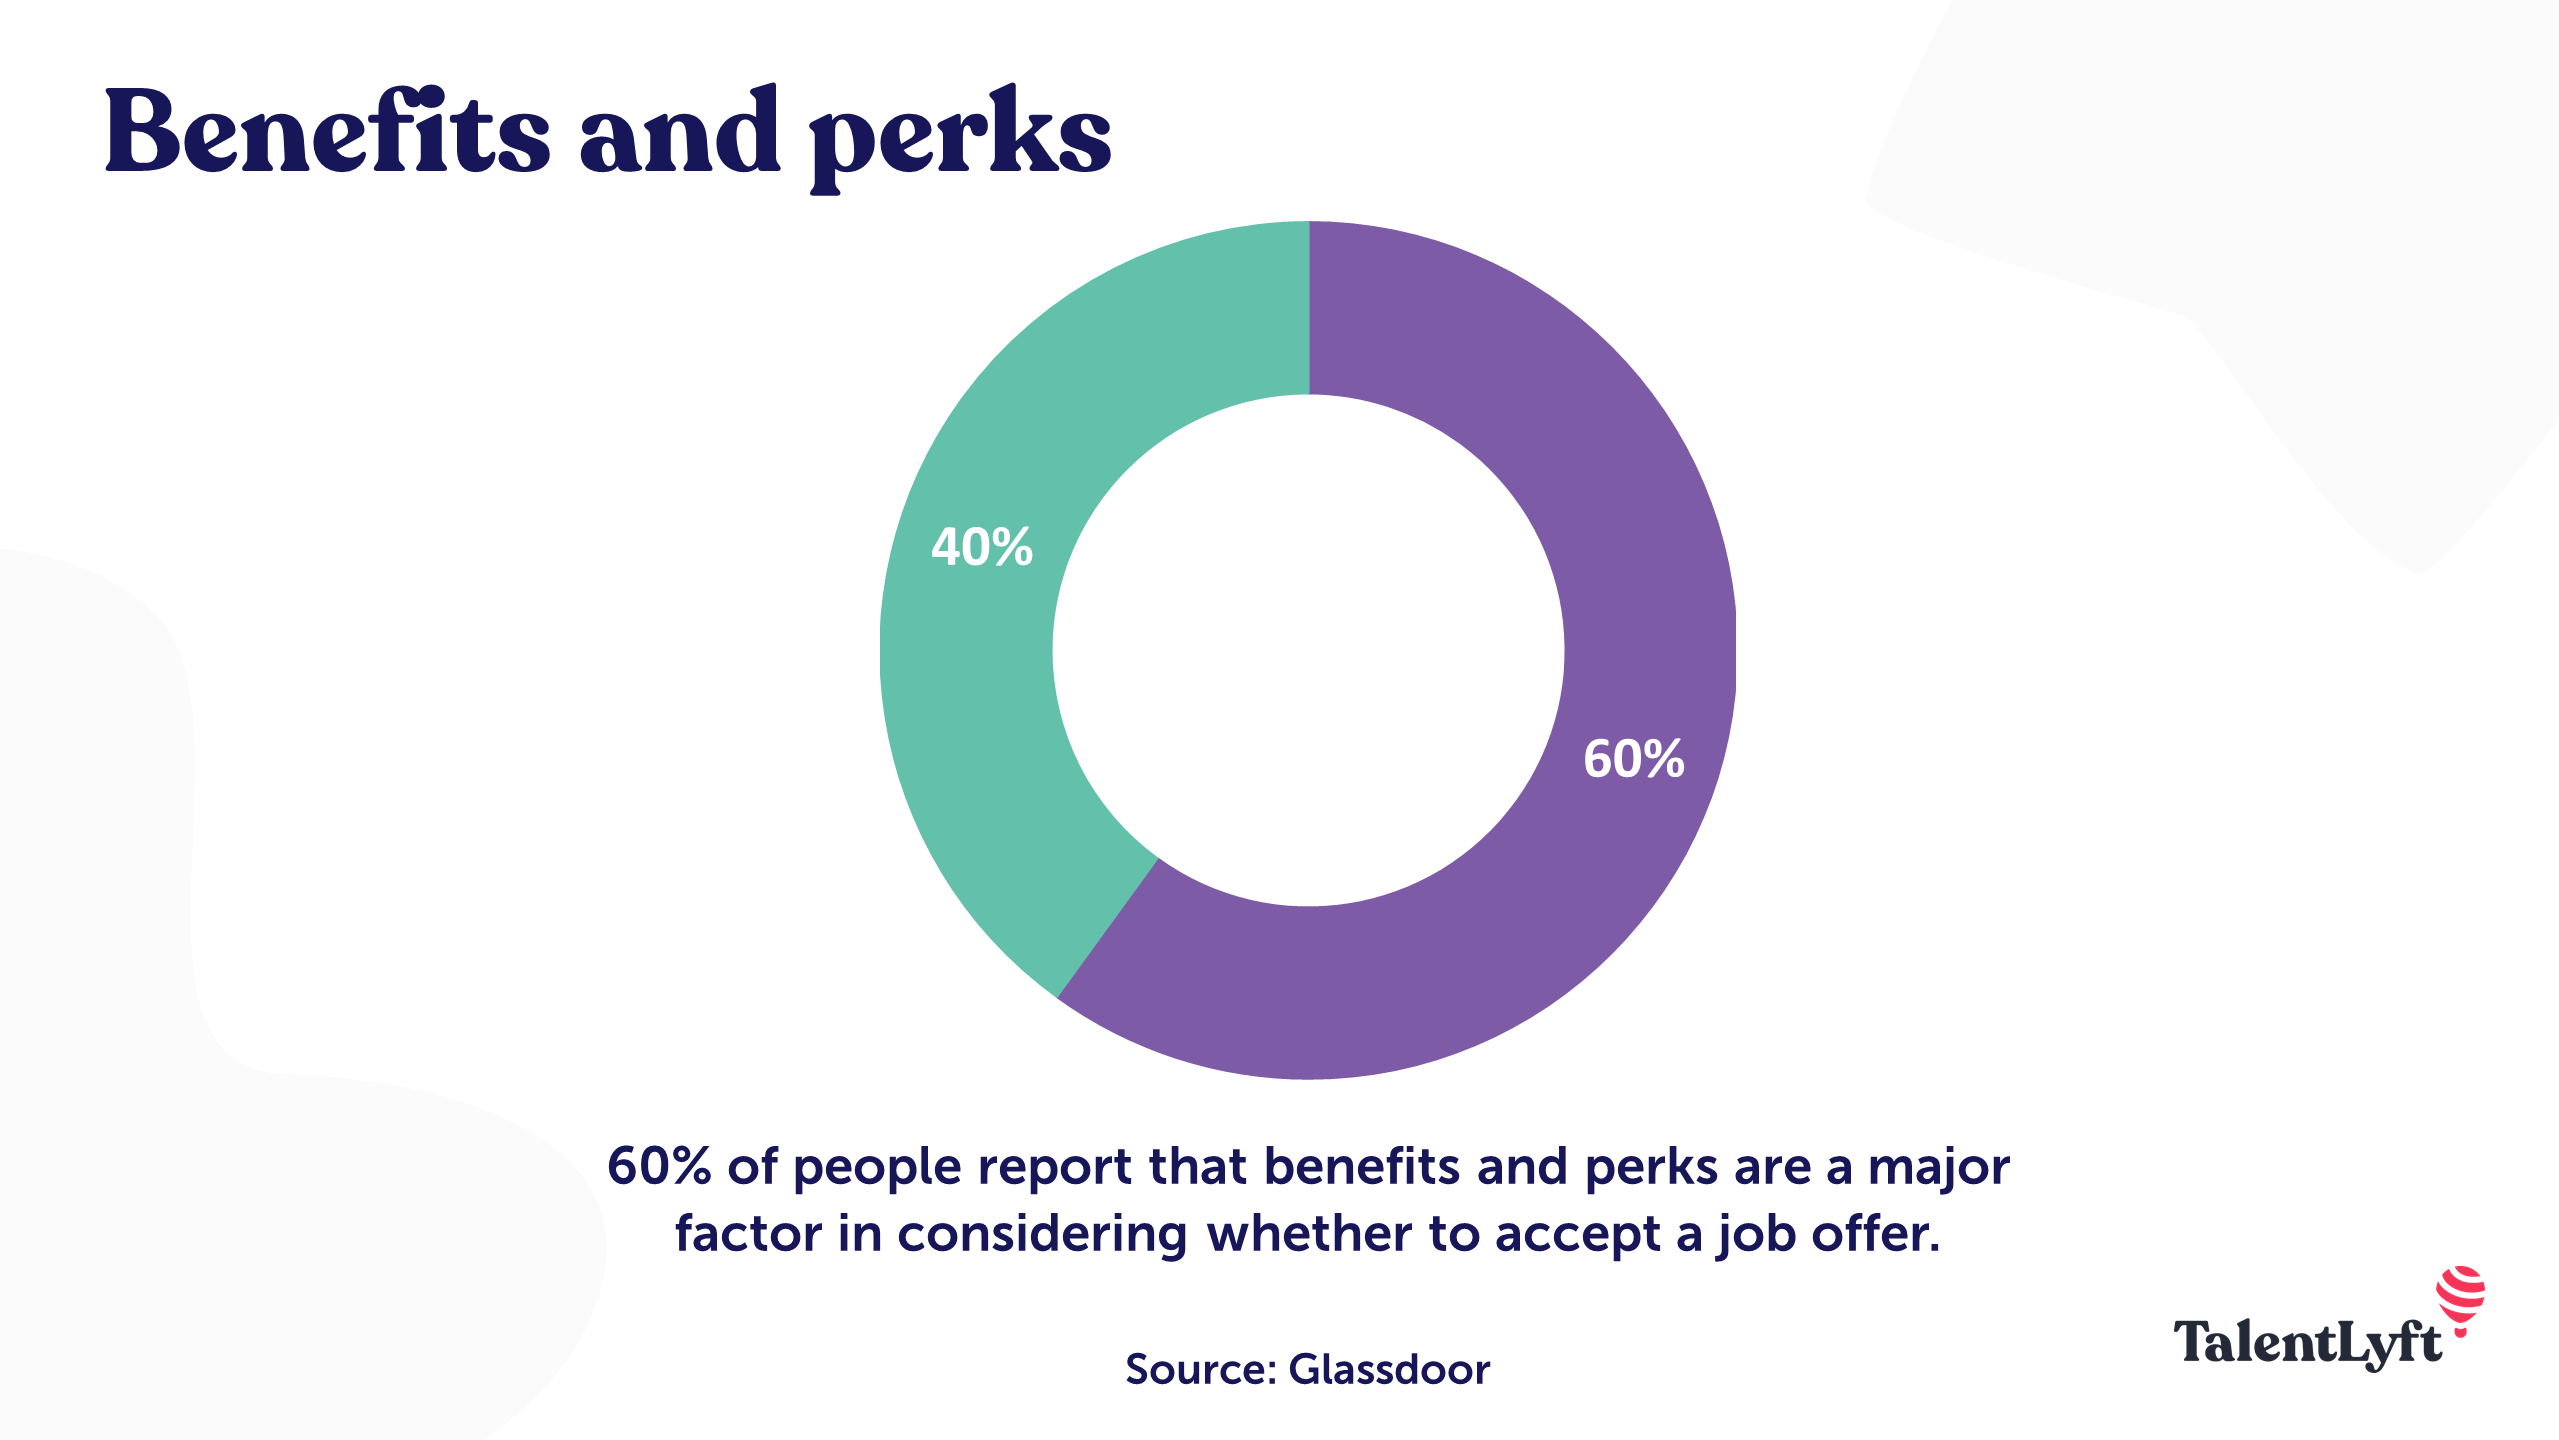 Employee value proposition: Perks and benefits